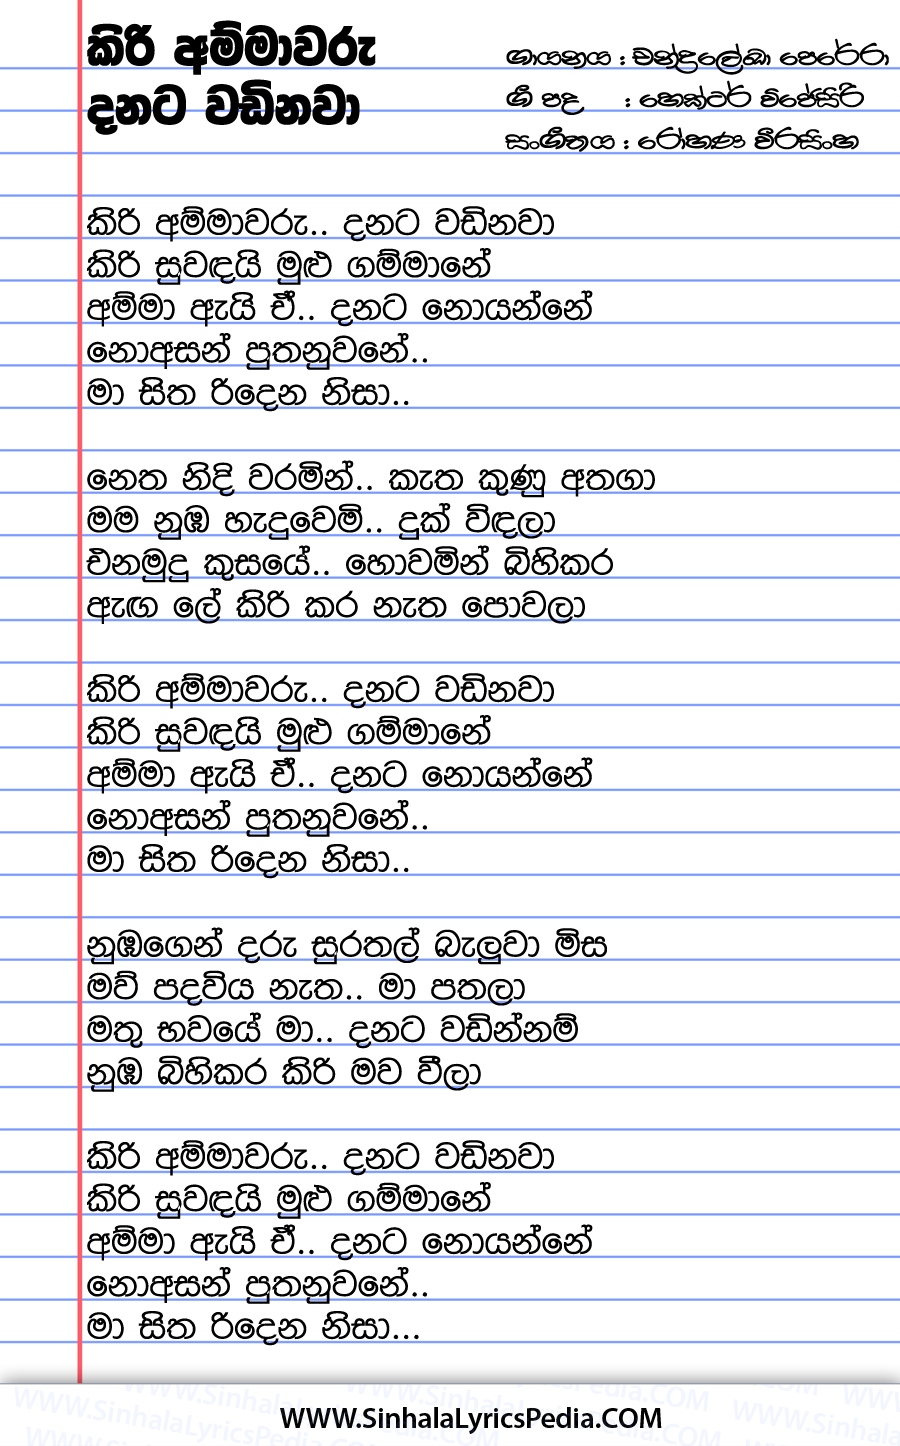 Kiri Ammawaru Danata Wadinawa Song Lyrics